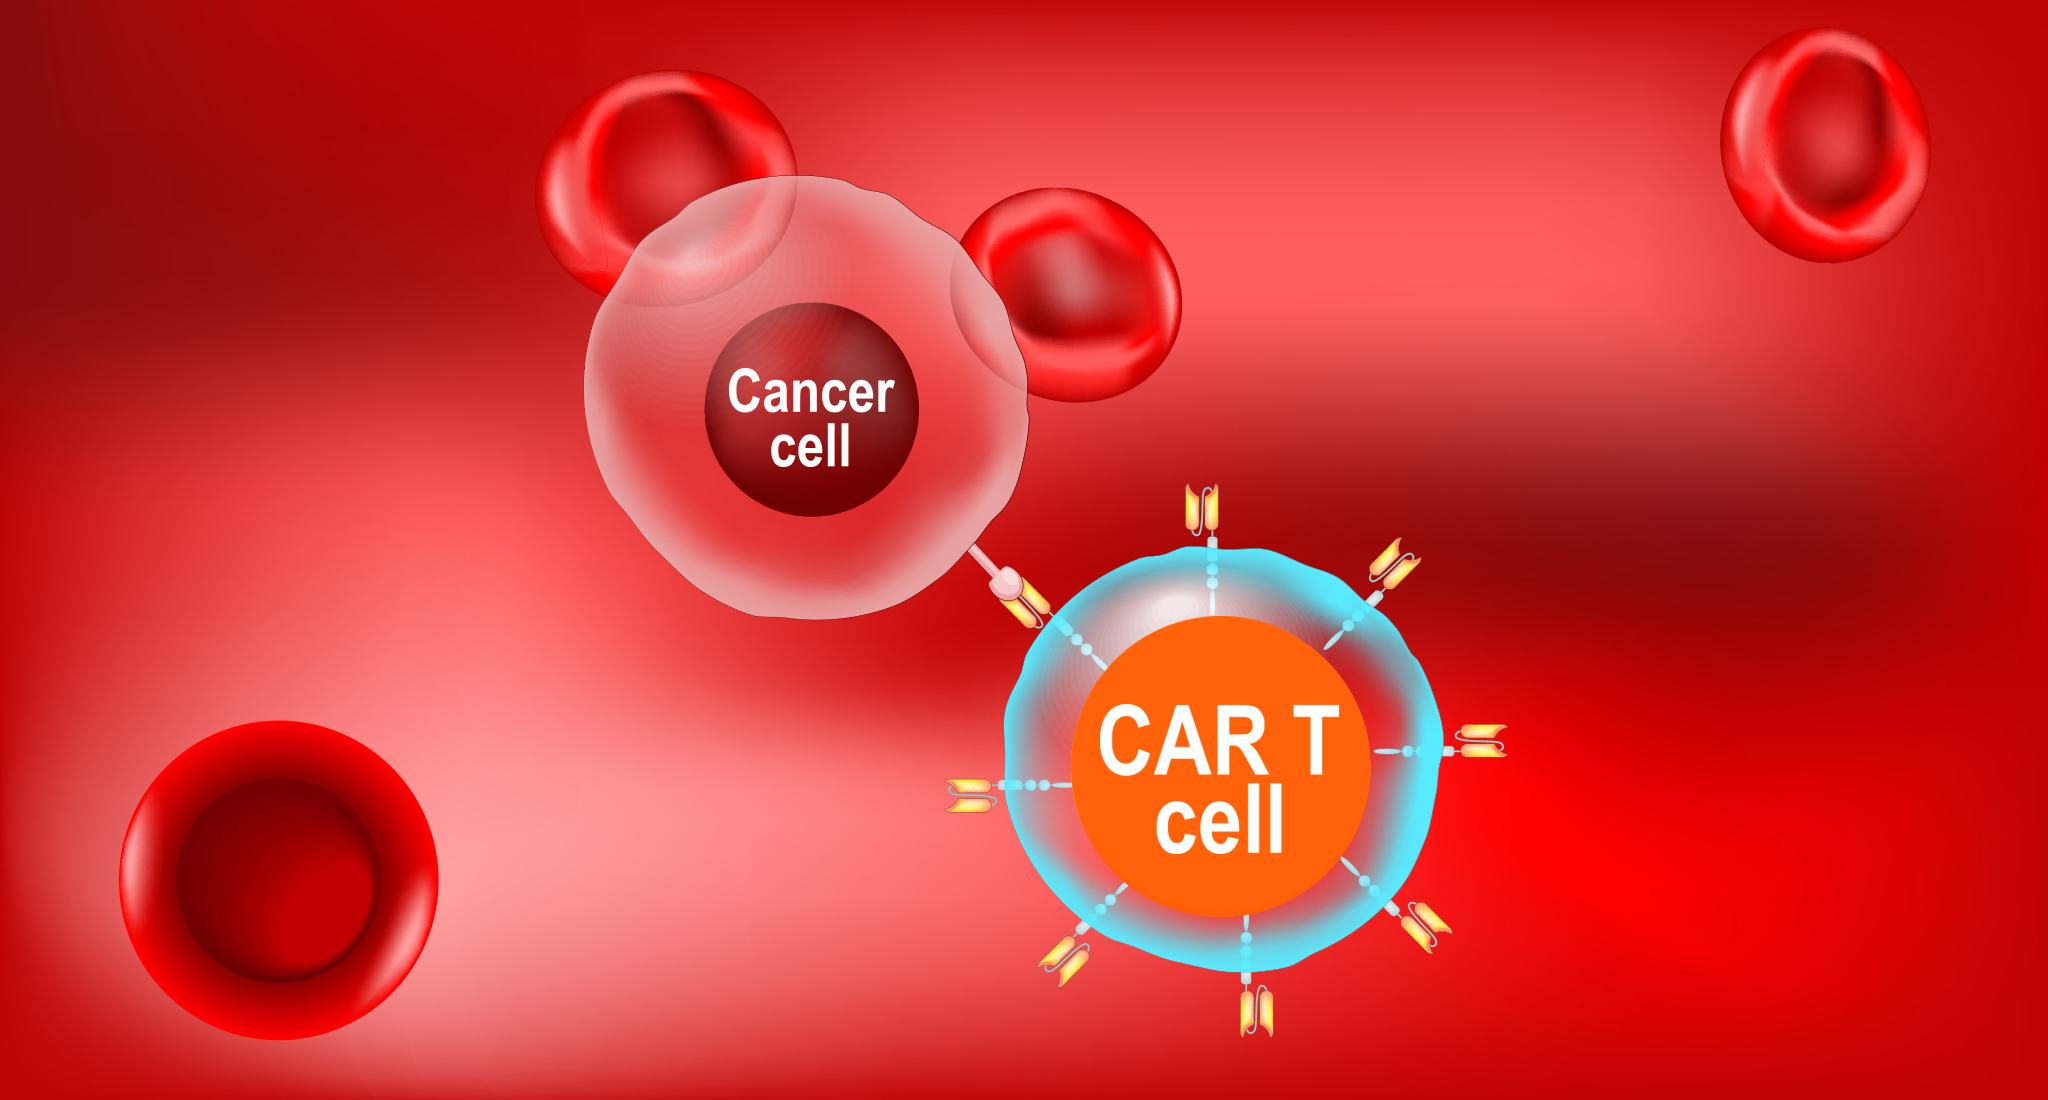 CAR T cell therapy- Reprogramming T cells to fight cancer